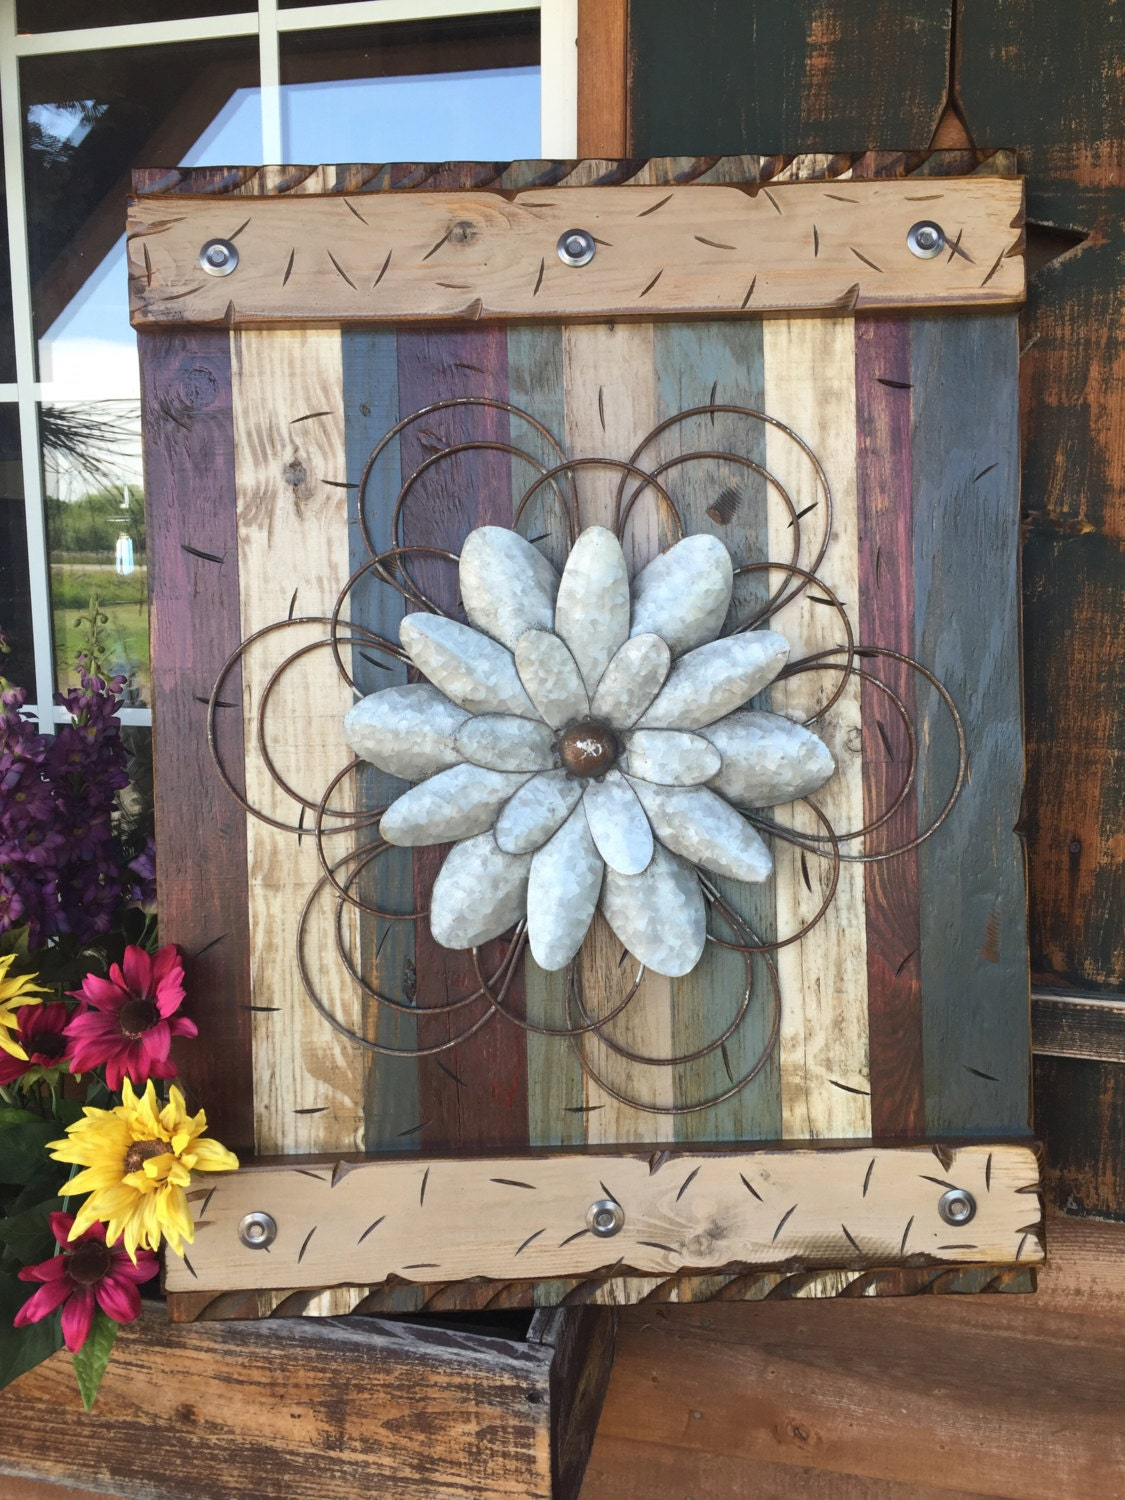 ddb361776cde FLOWER Rustic Sign LARGE Reclaimed Shutter Barn Wood Distressed Industrial  Blue Green Red Metal Flowers Pallet Wall Home Decor Log Cabin